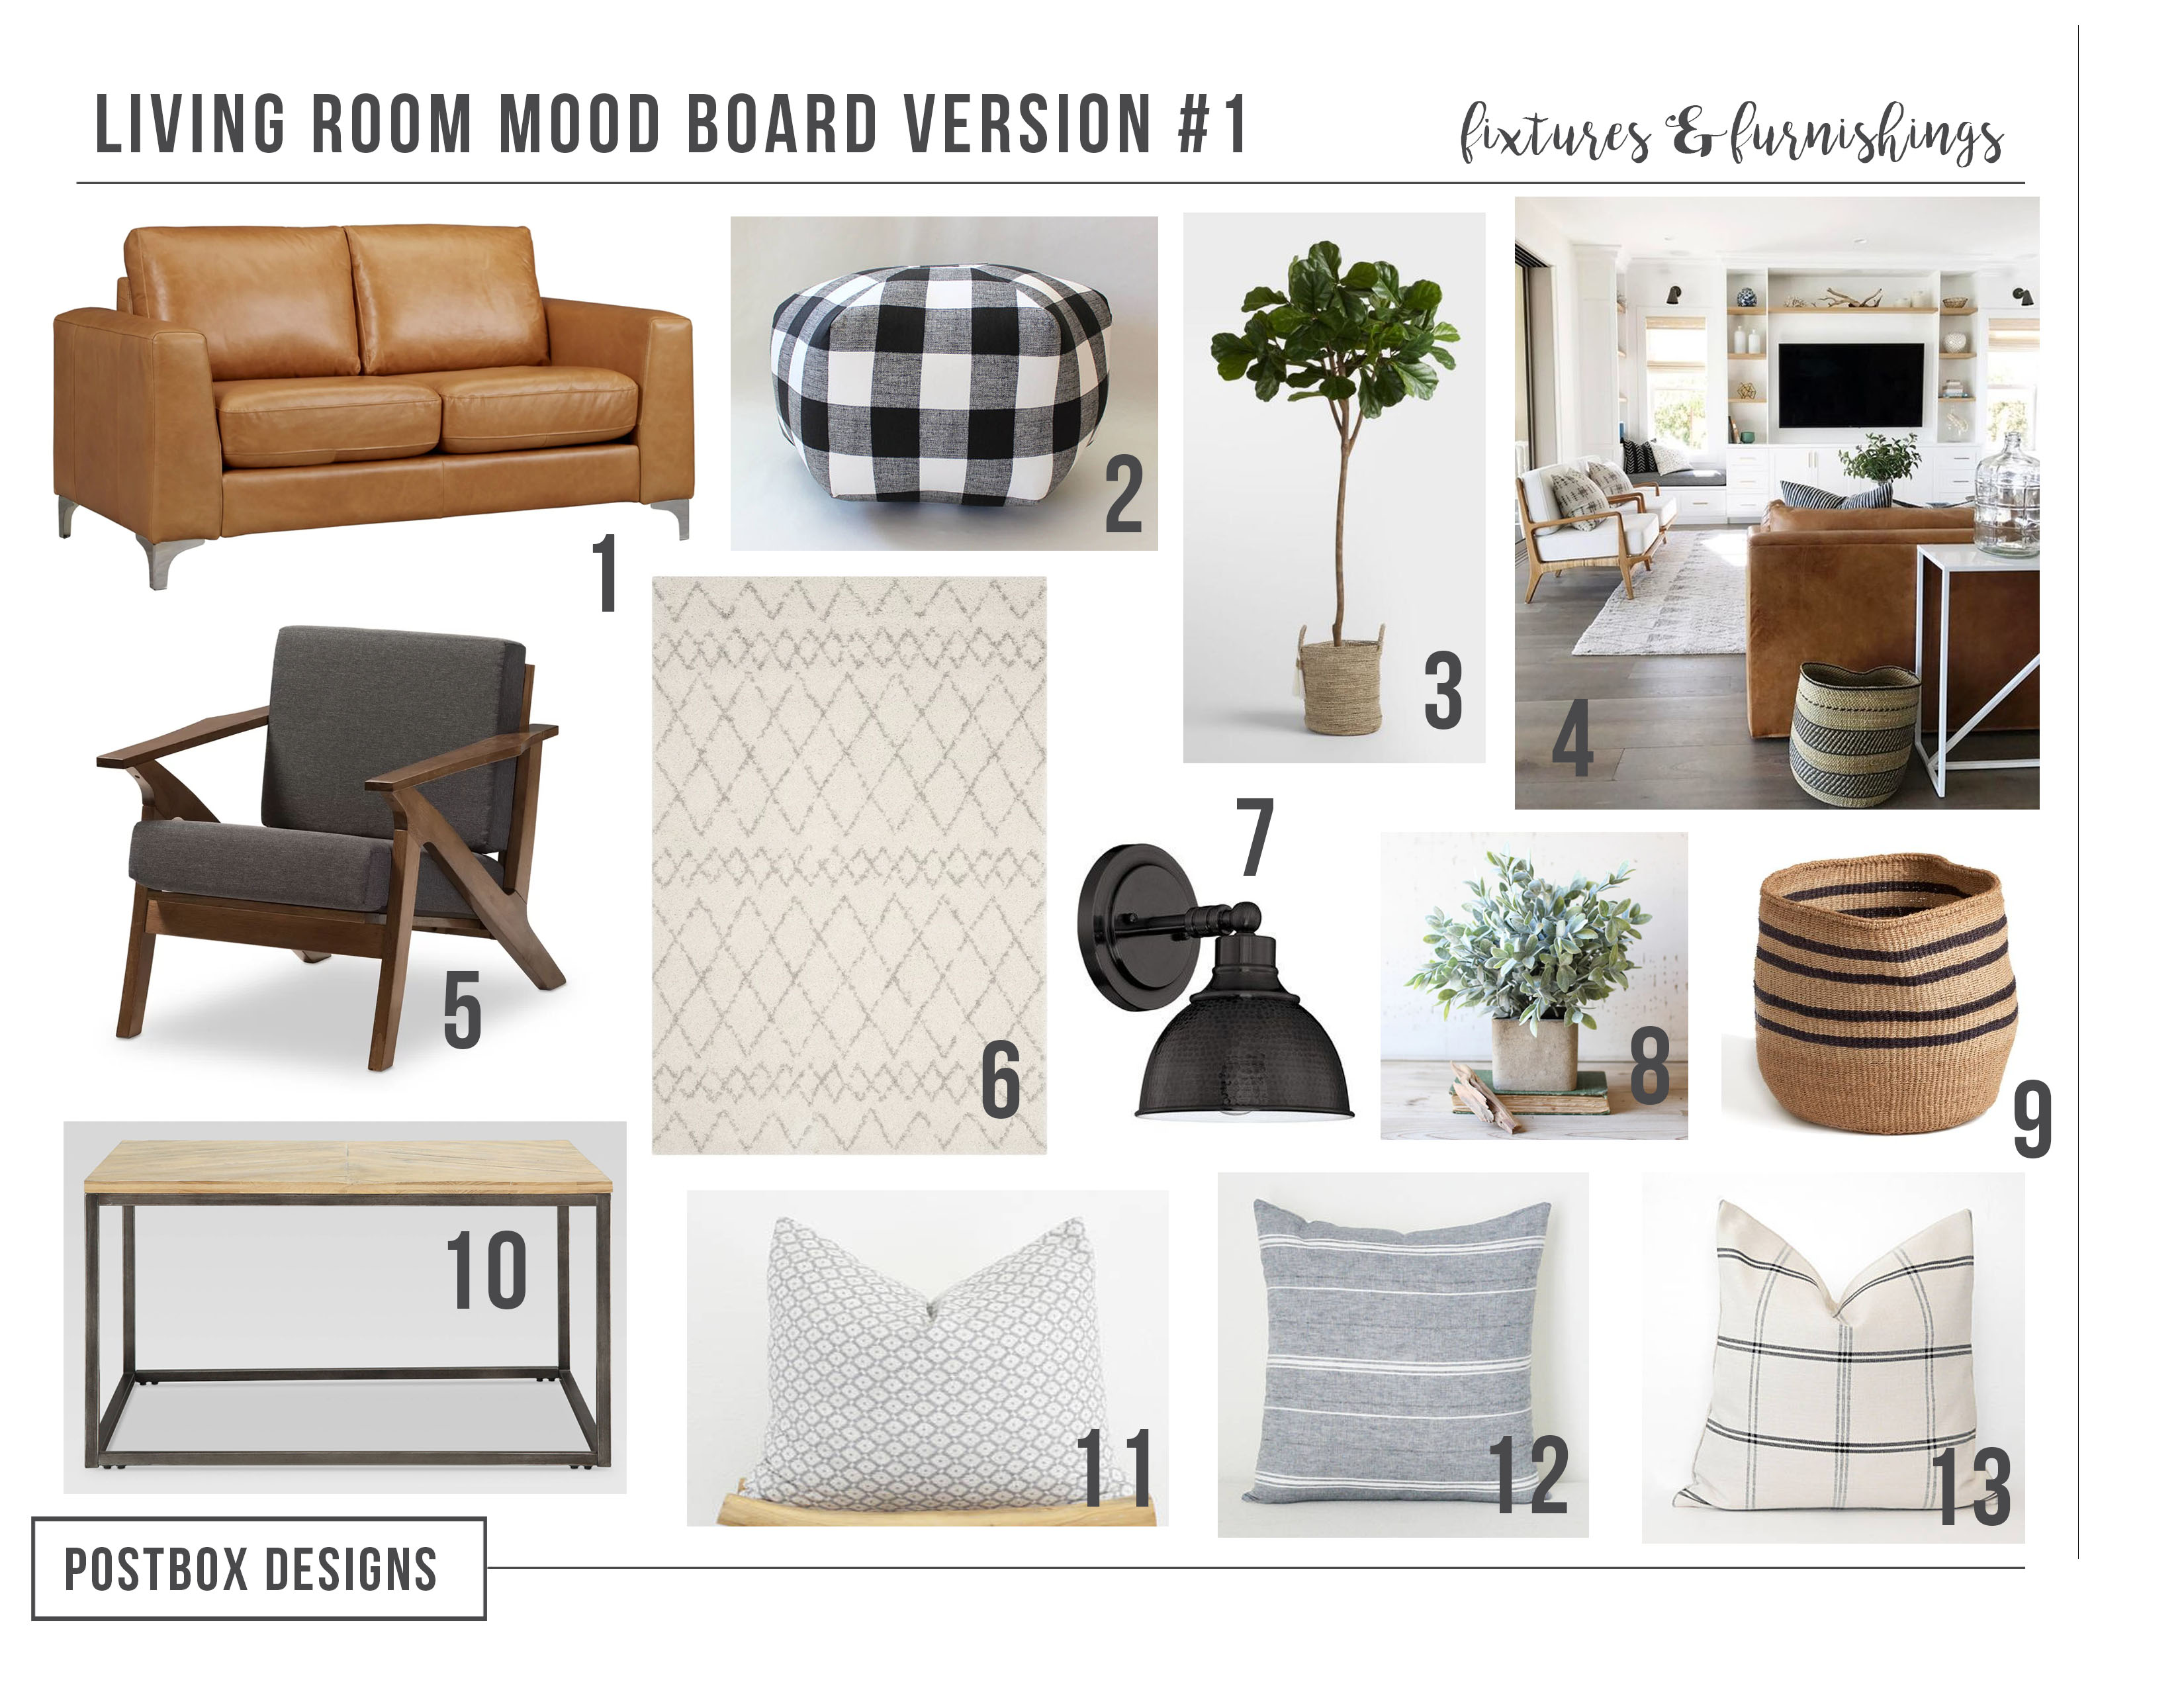 Budget Family Friendly Modern Farmhouse Living Room: Part I